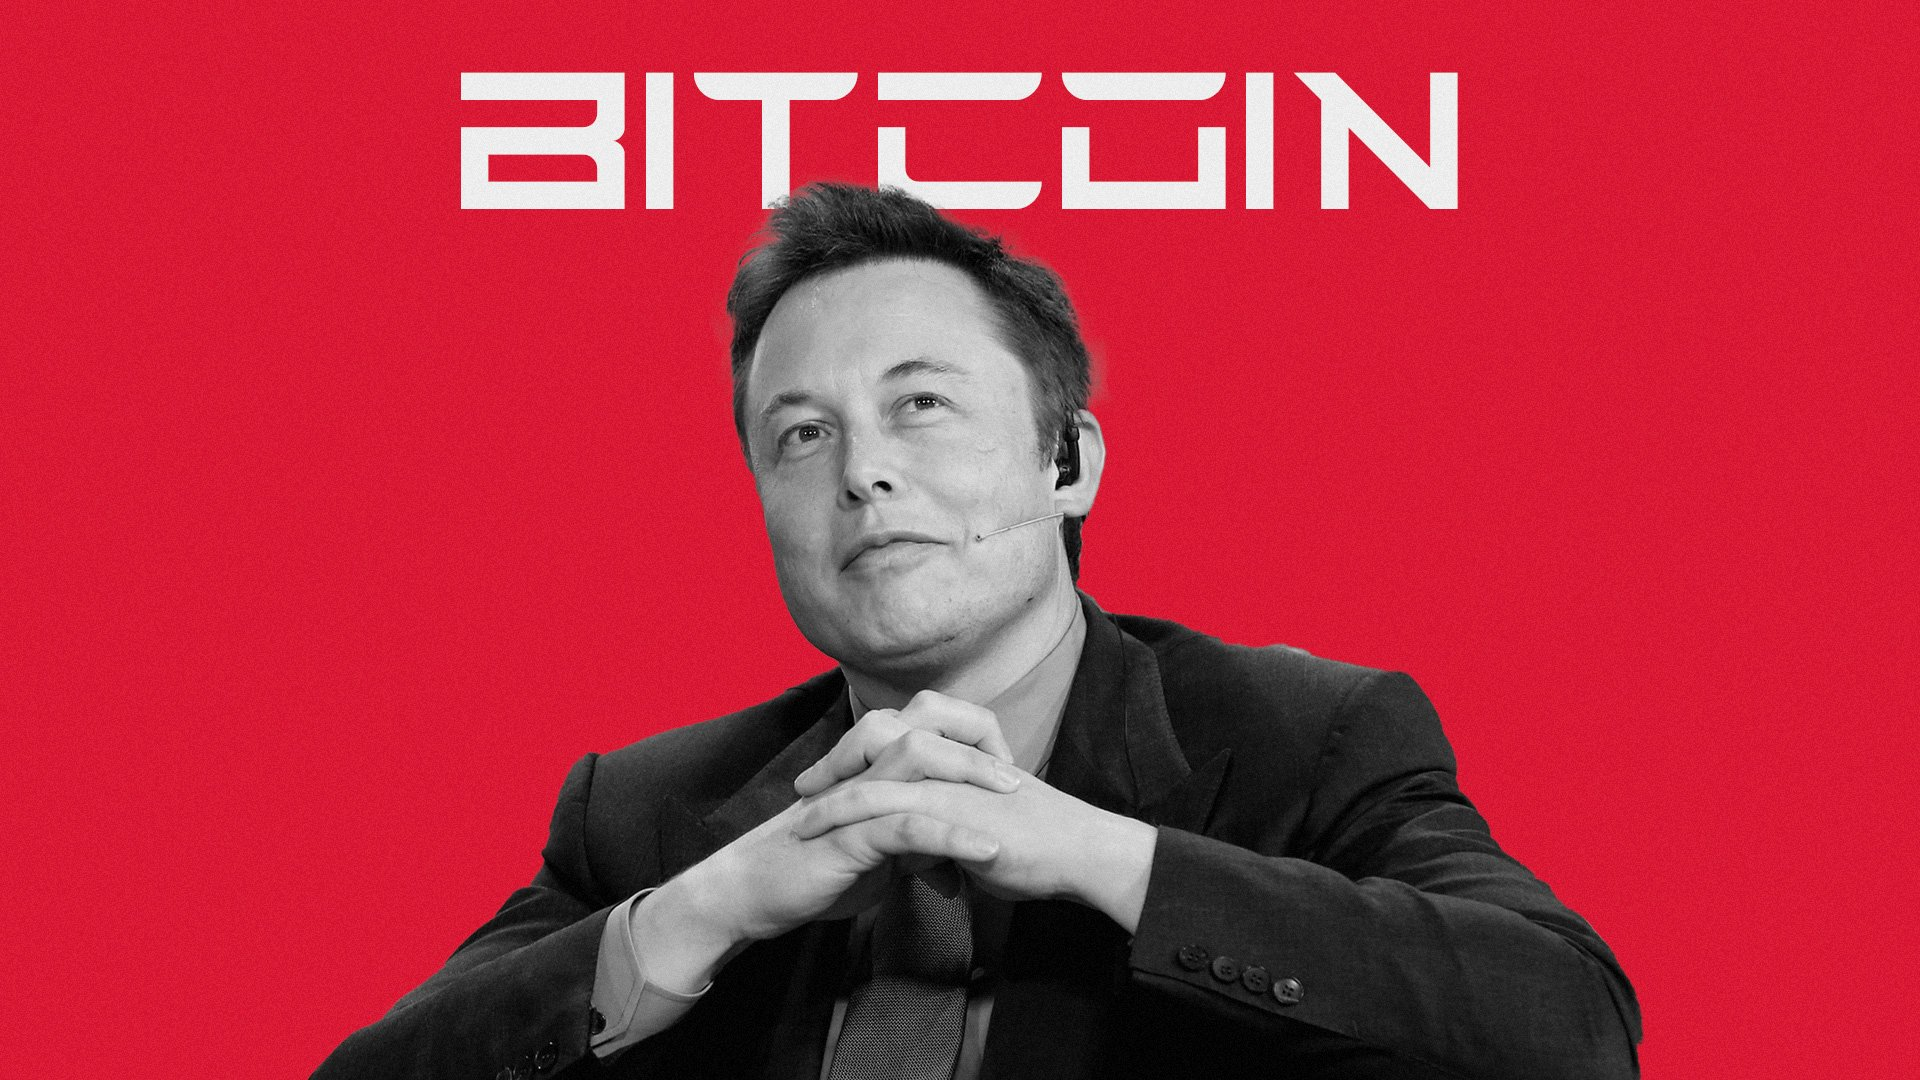 Elon Musk said he's speaking with bitcoin miners about renewable energy